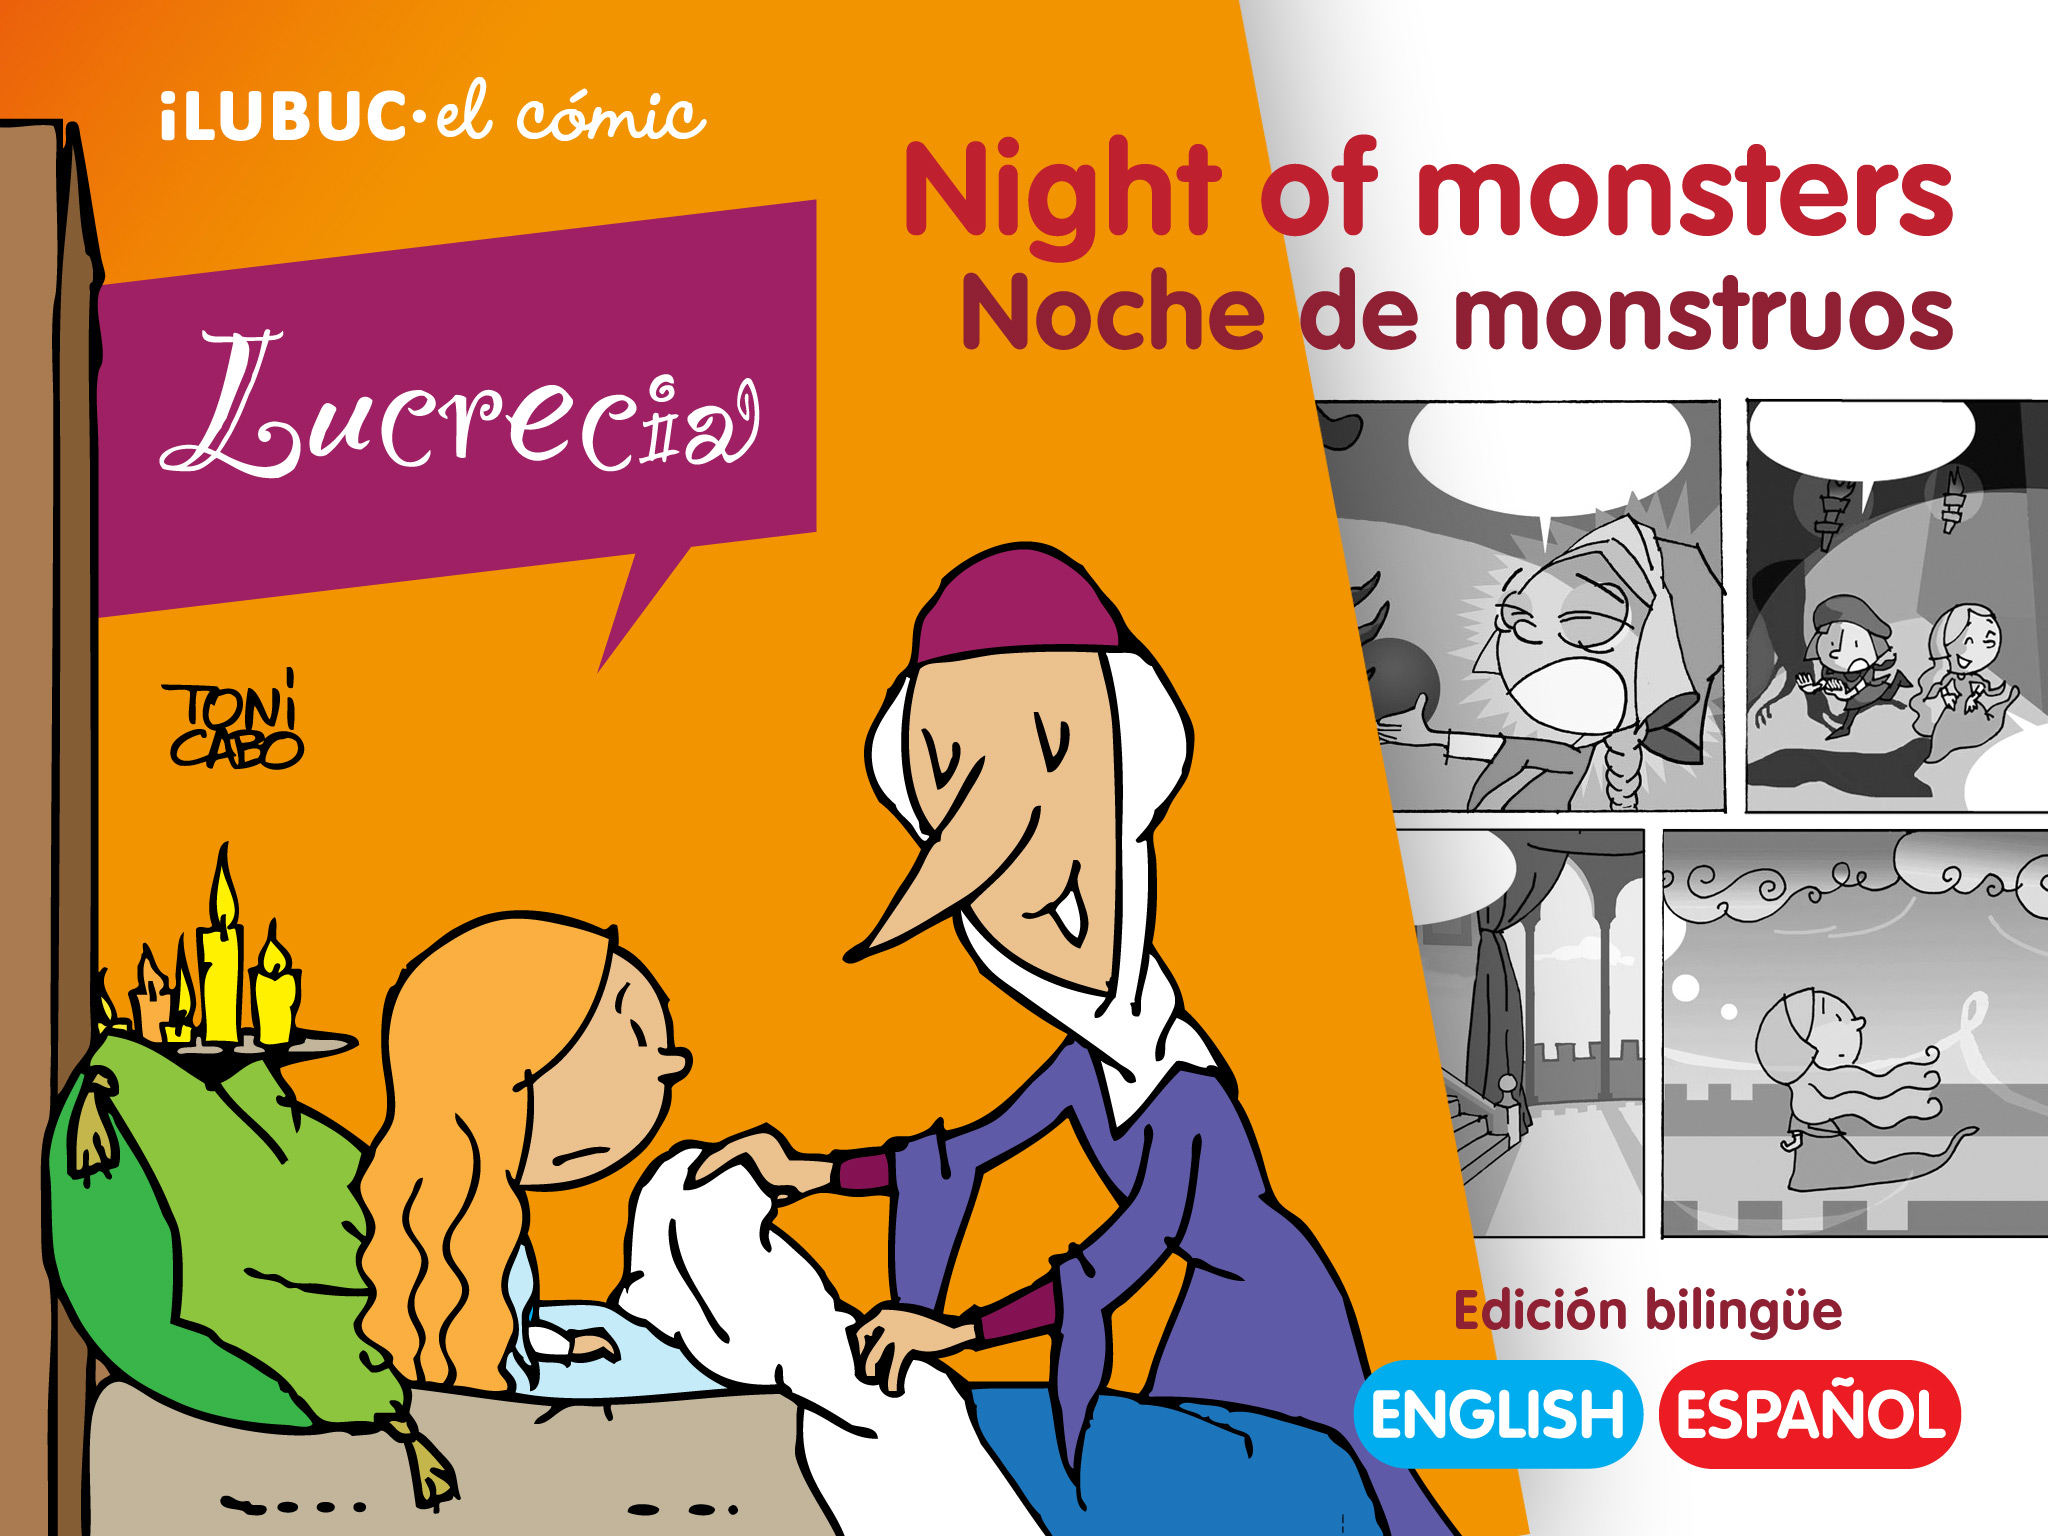 iLUBUC, el cómic: Lucrecia 02 Night of monsters | Noche de monstruos